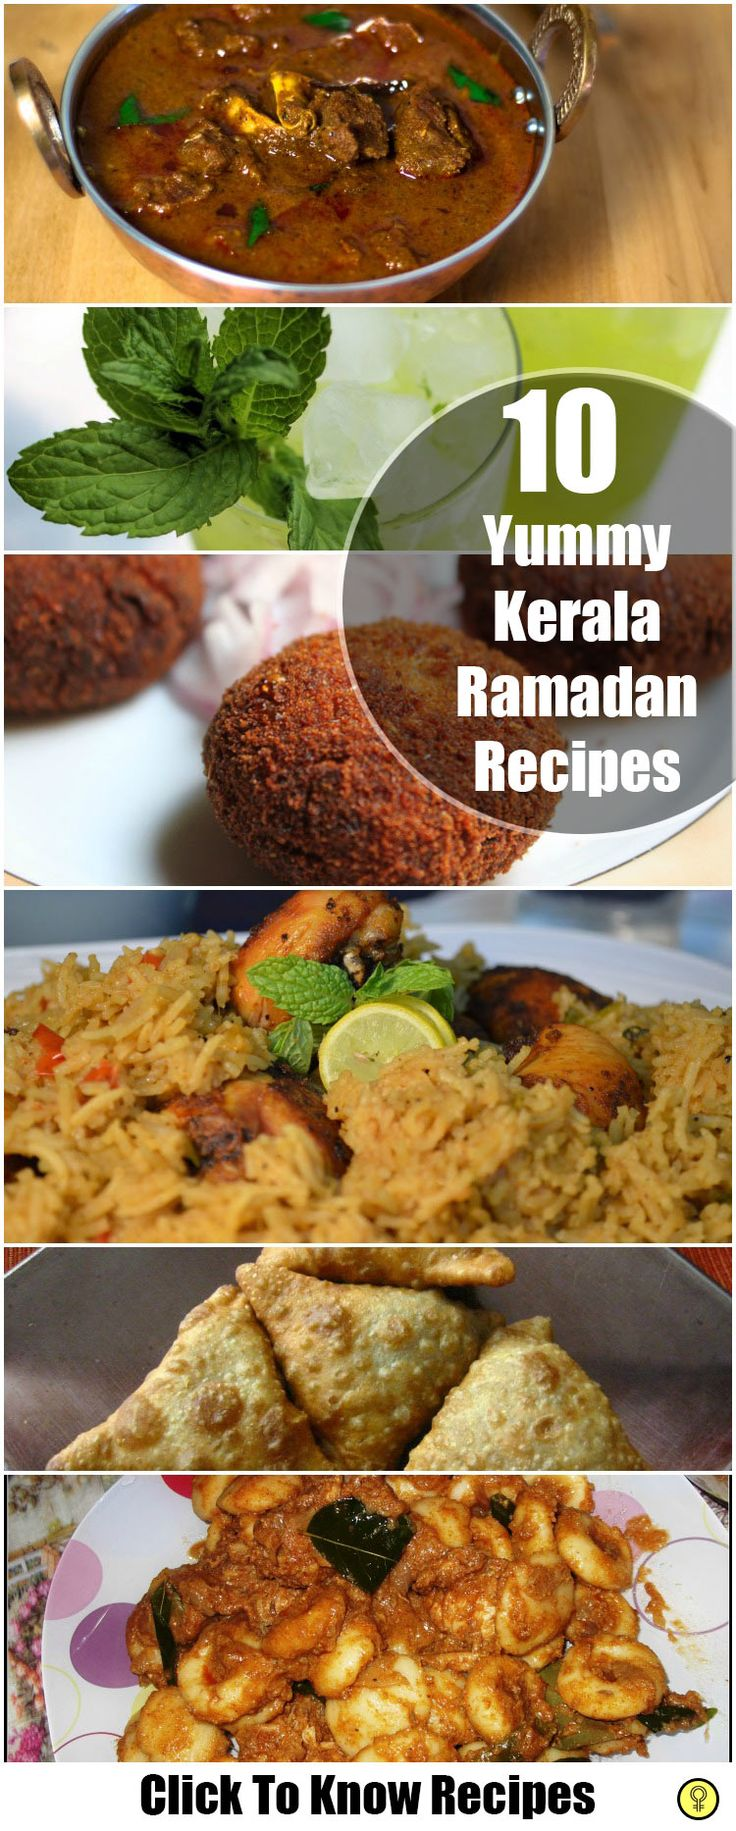 10 Yummy Kerala Ramadan Recipes You Must Definitely Try : Kerala has a significant Muslim population and during Ramadan, the cuisine of the state takes on an exotic look.